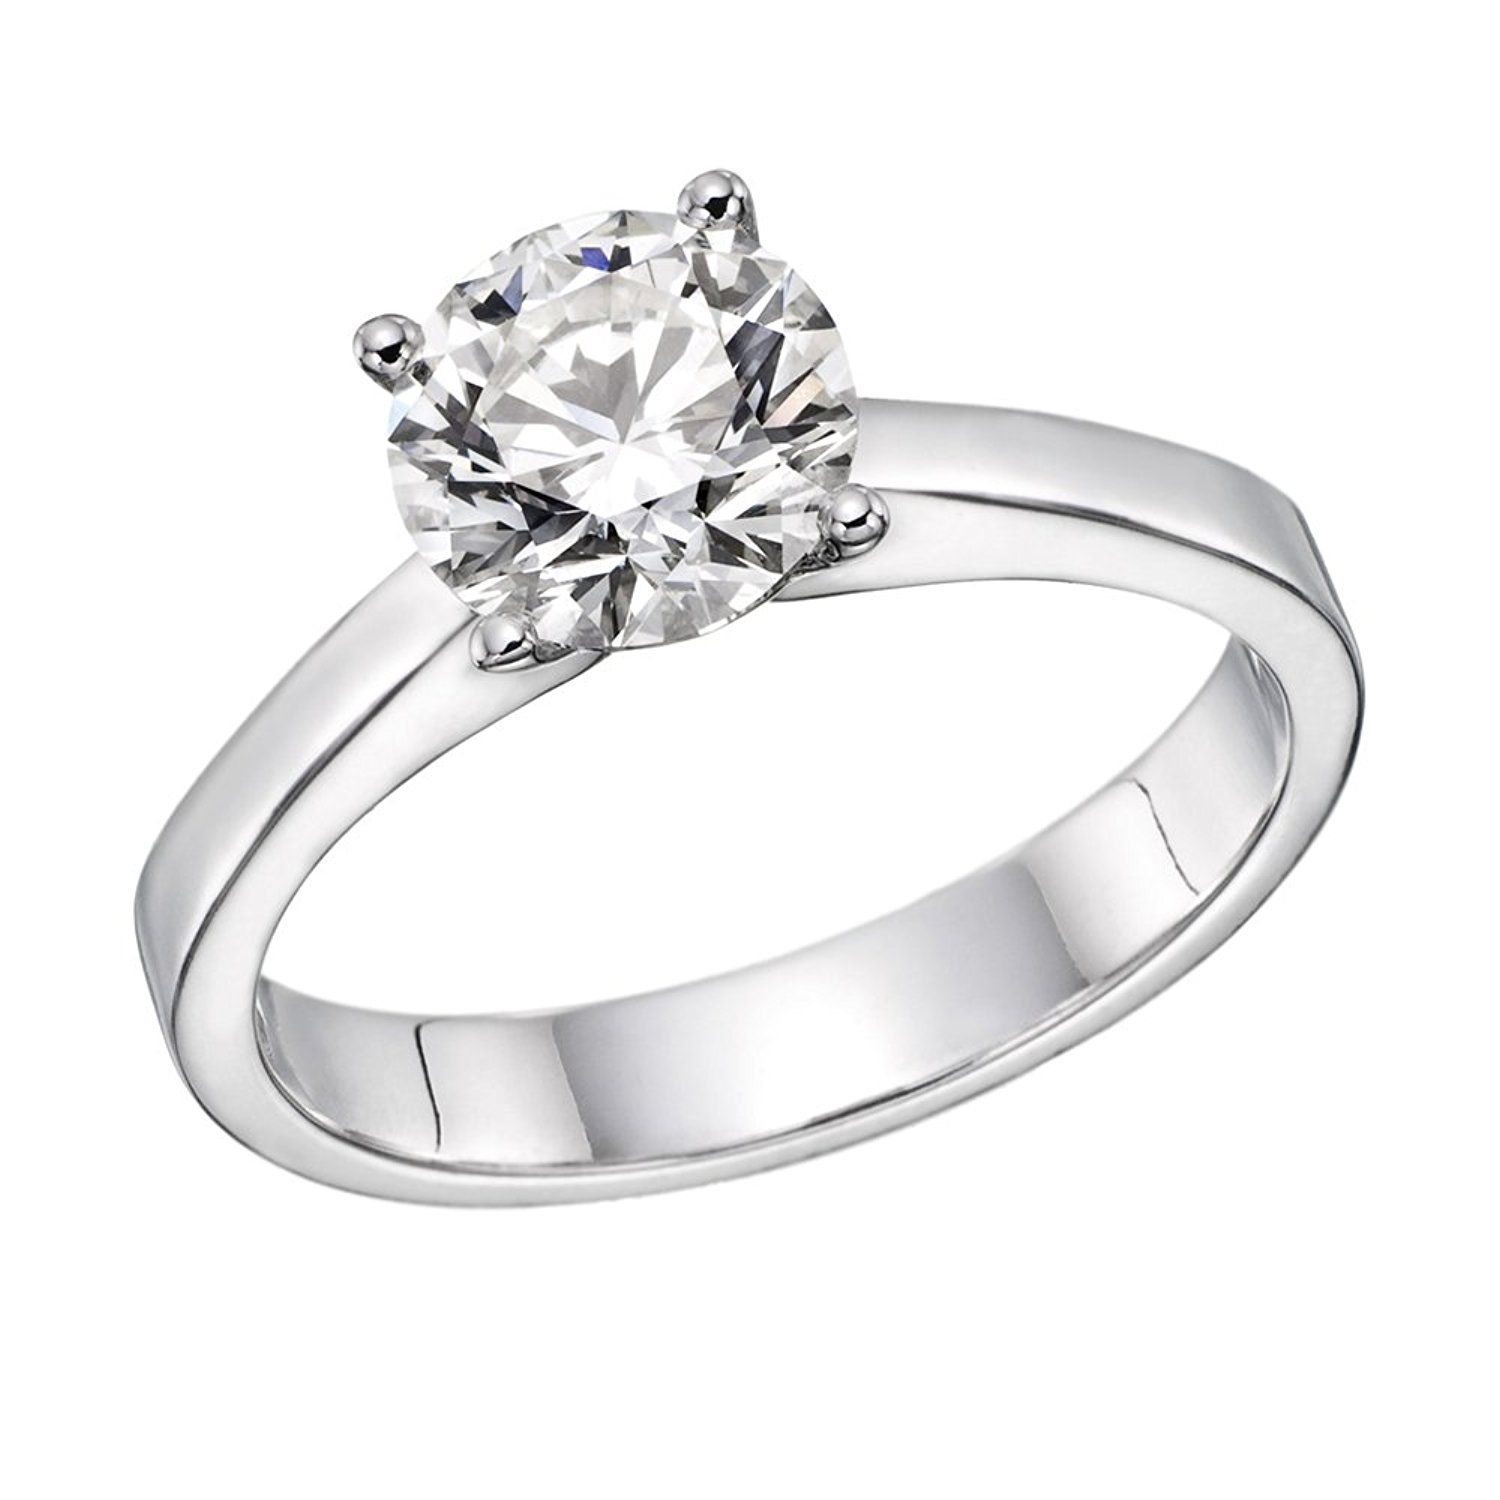 engagement jewellery under source inexpensive canadian ing read image of thejewelleryeditor this diamonds new before econtechvn com cheap rings guide awesome